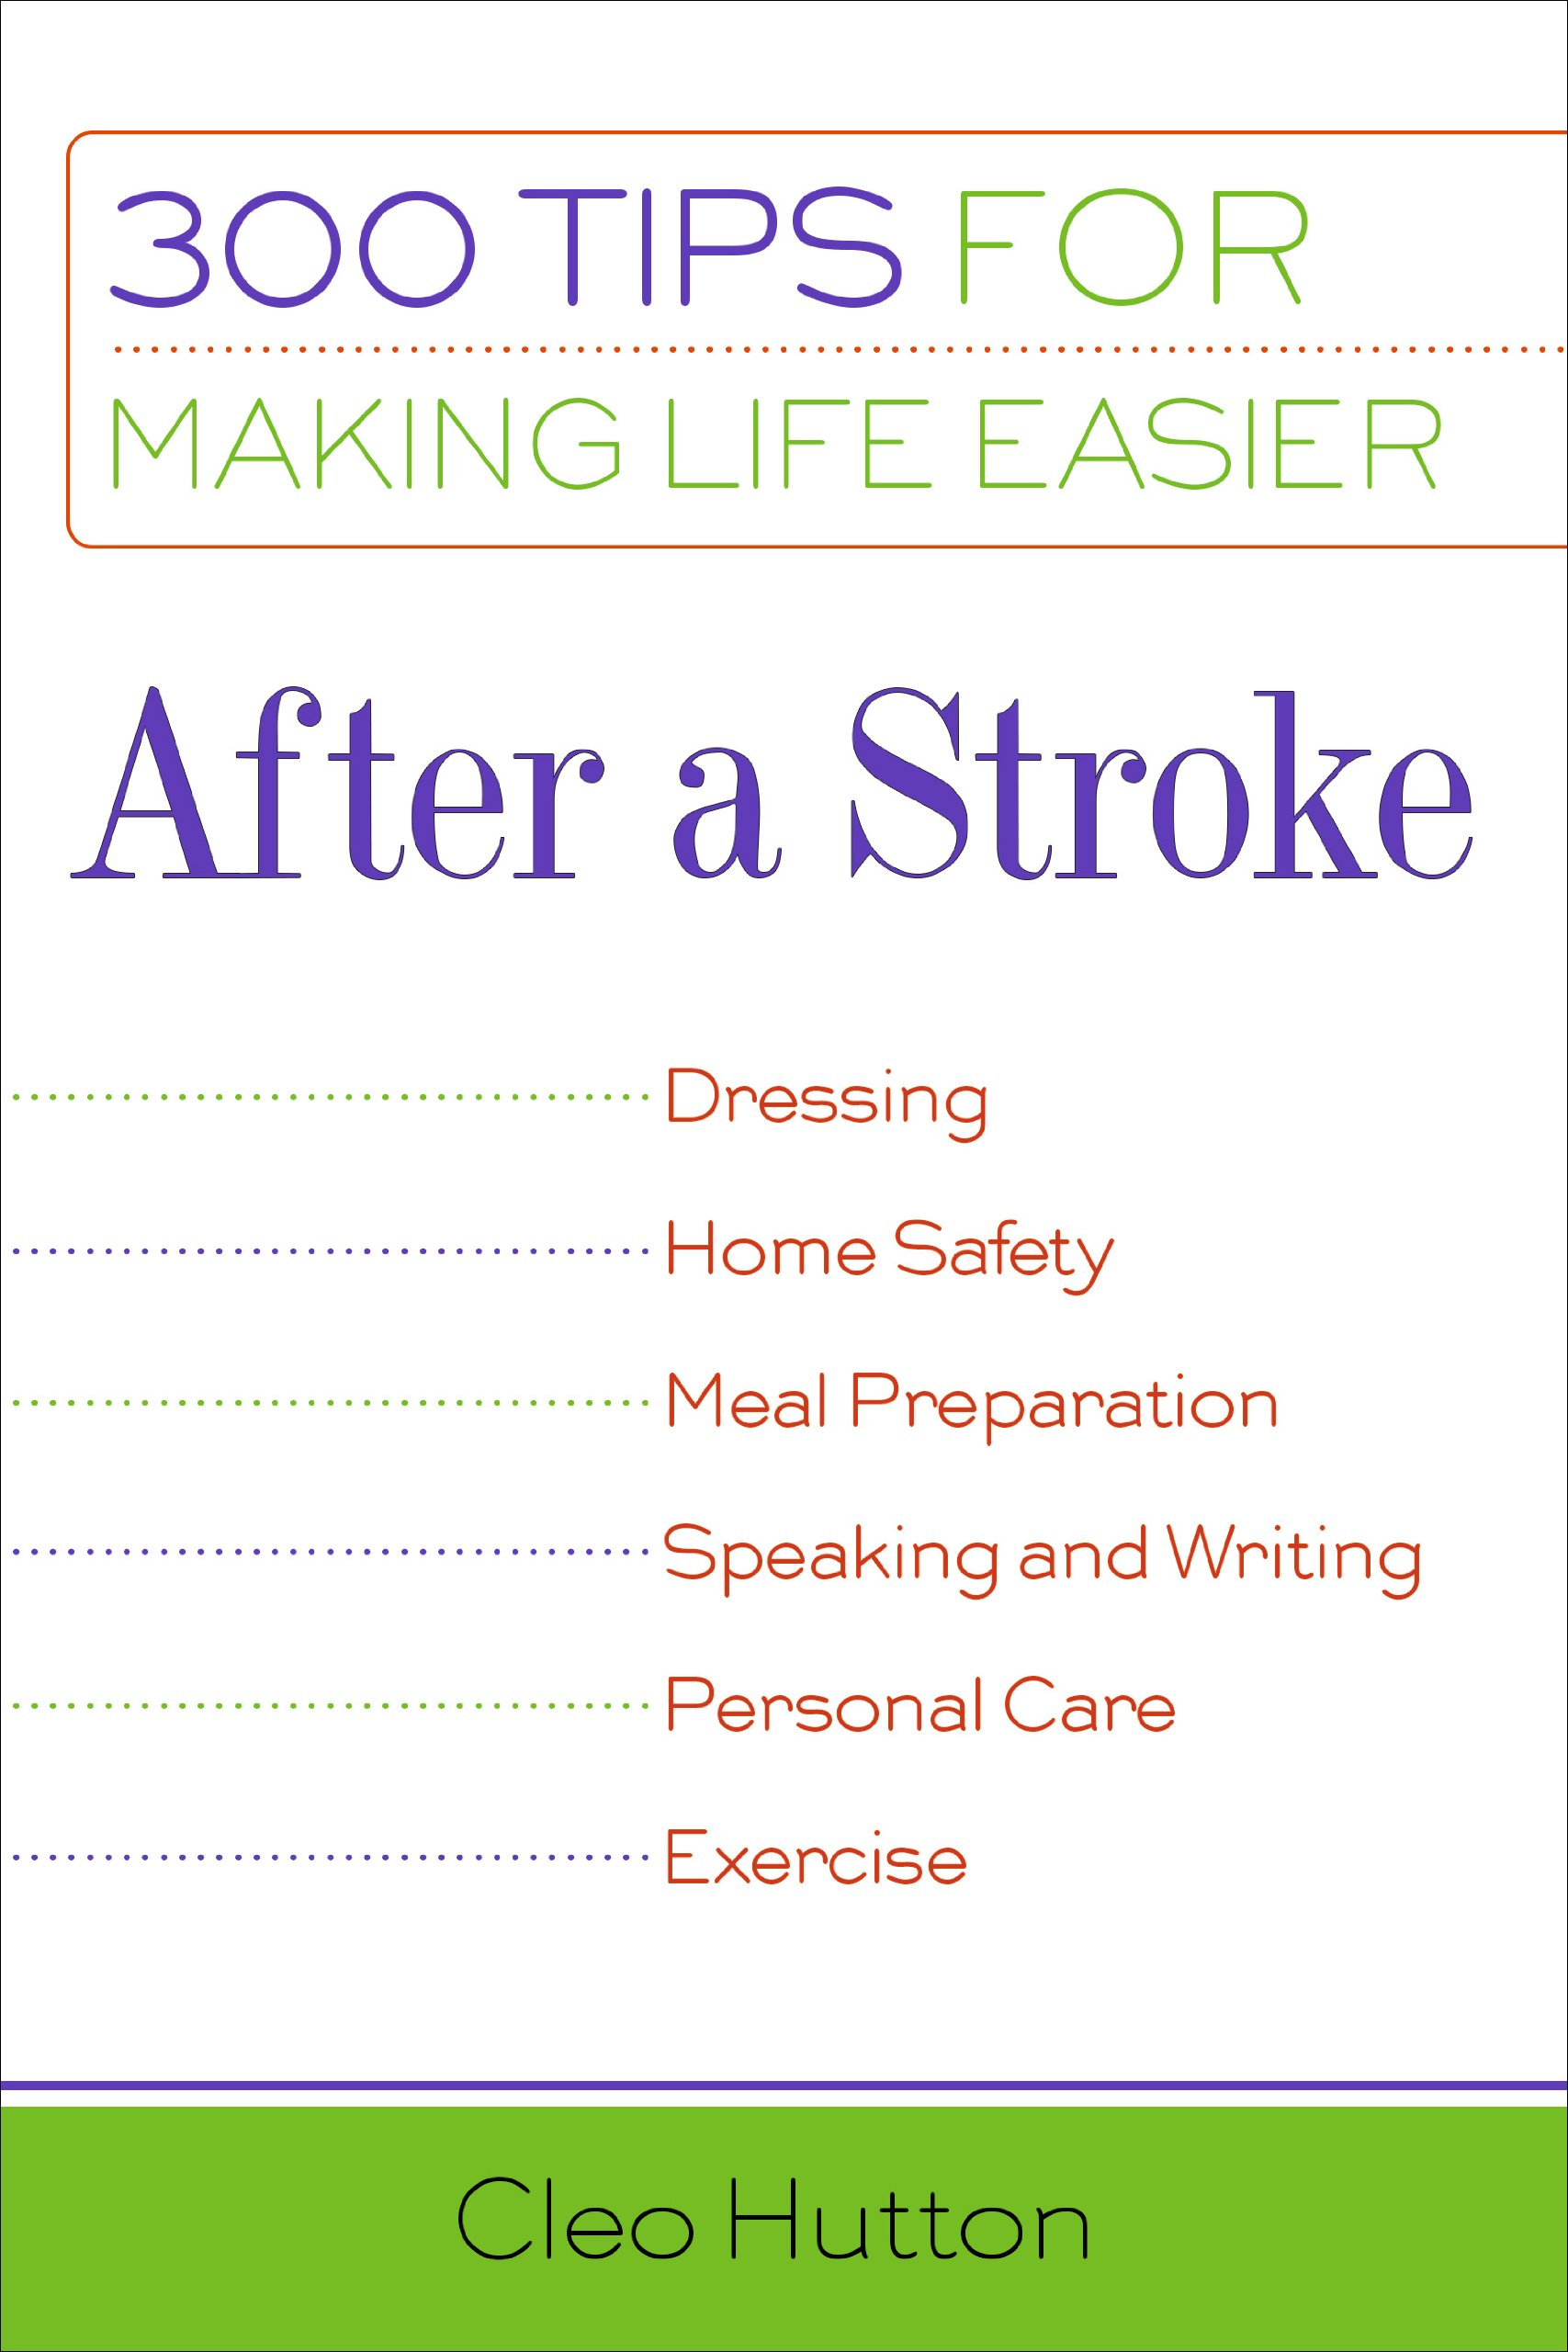 After a stroke 300 tips for making life easier cleo hutton rn after a stroke 300 tips for making life easier cleo hutton rn cleo hutton 9781932603118 amazon books negle Images